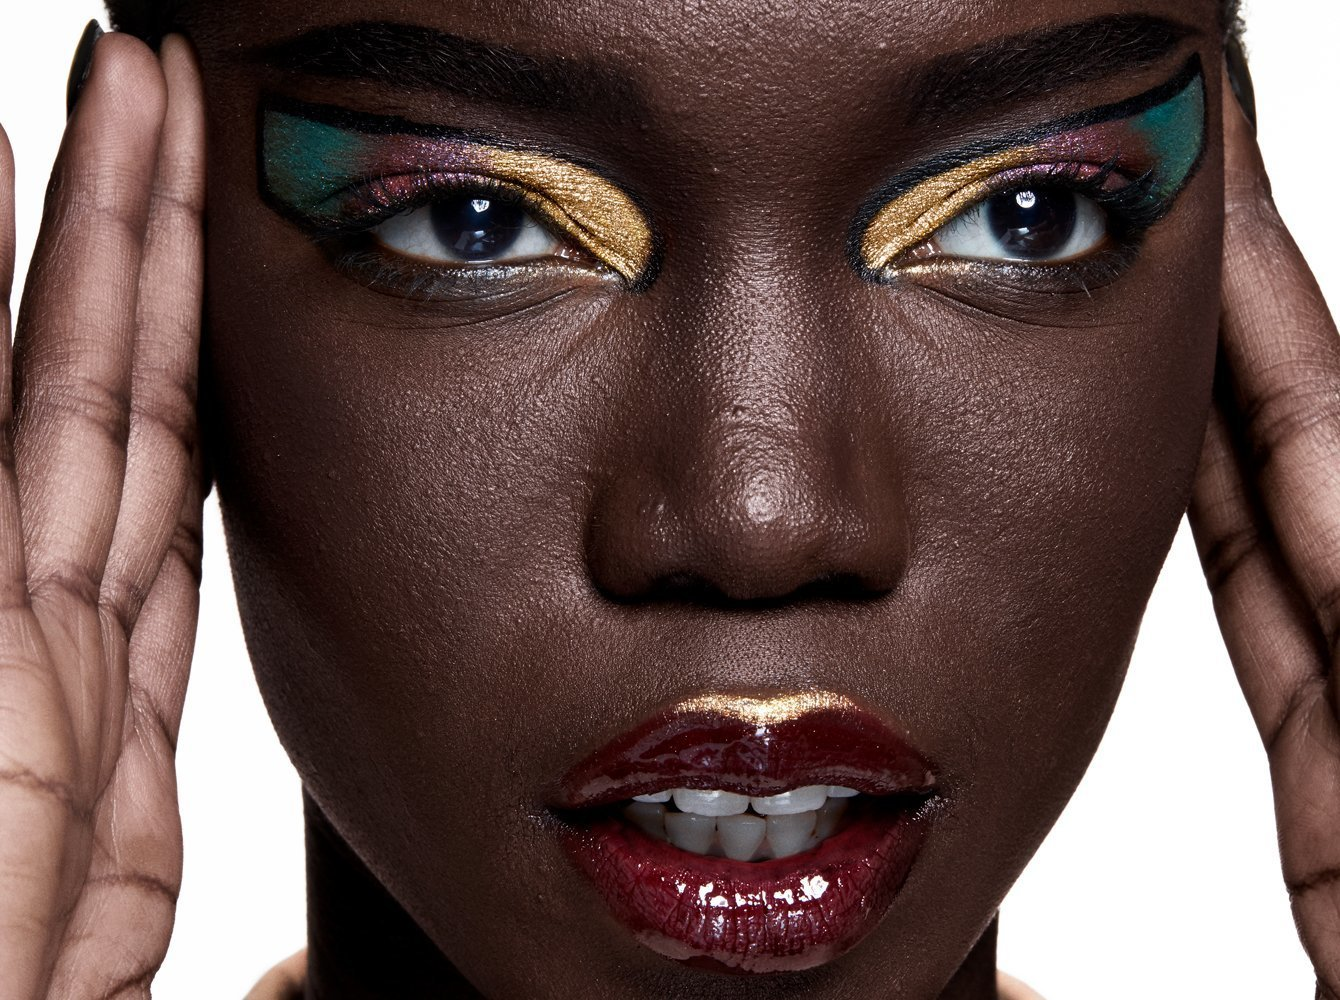 Attribution: [Nyajock, a black female model, is wearing a deep red lip gloss with a hing of gold. She is wearing gold, purple, and green eye shadow inside winged graphic eyeliner. She is looking into the distance.] Via Haus Labs.